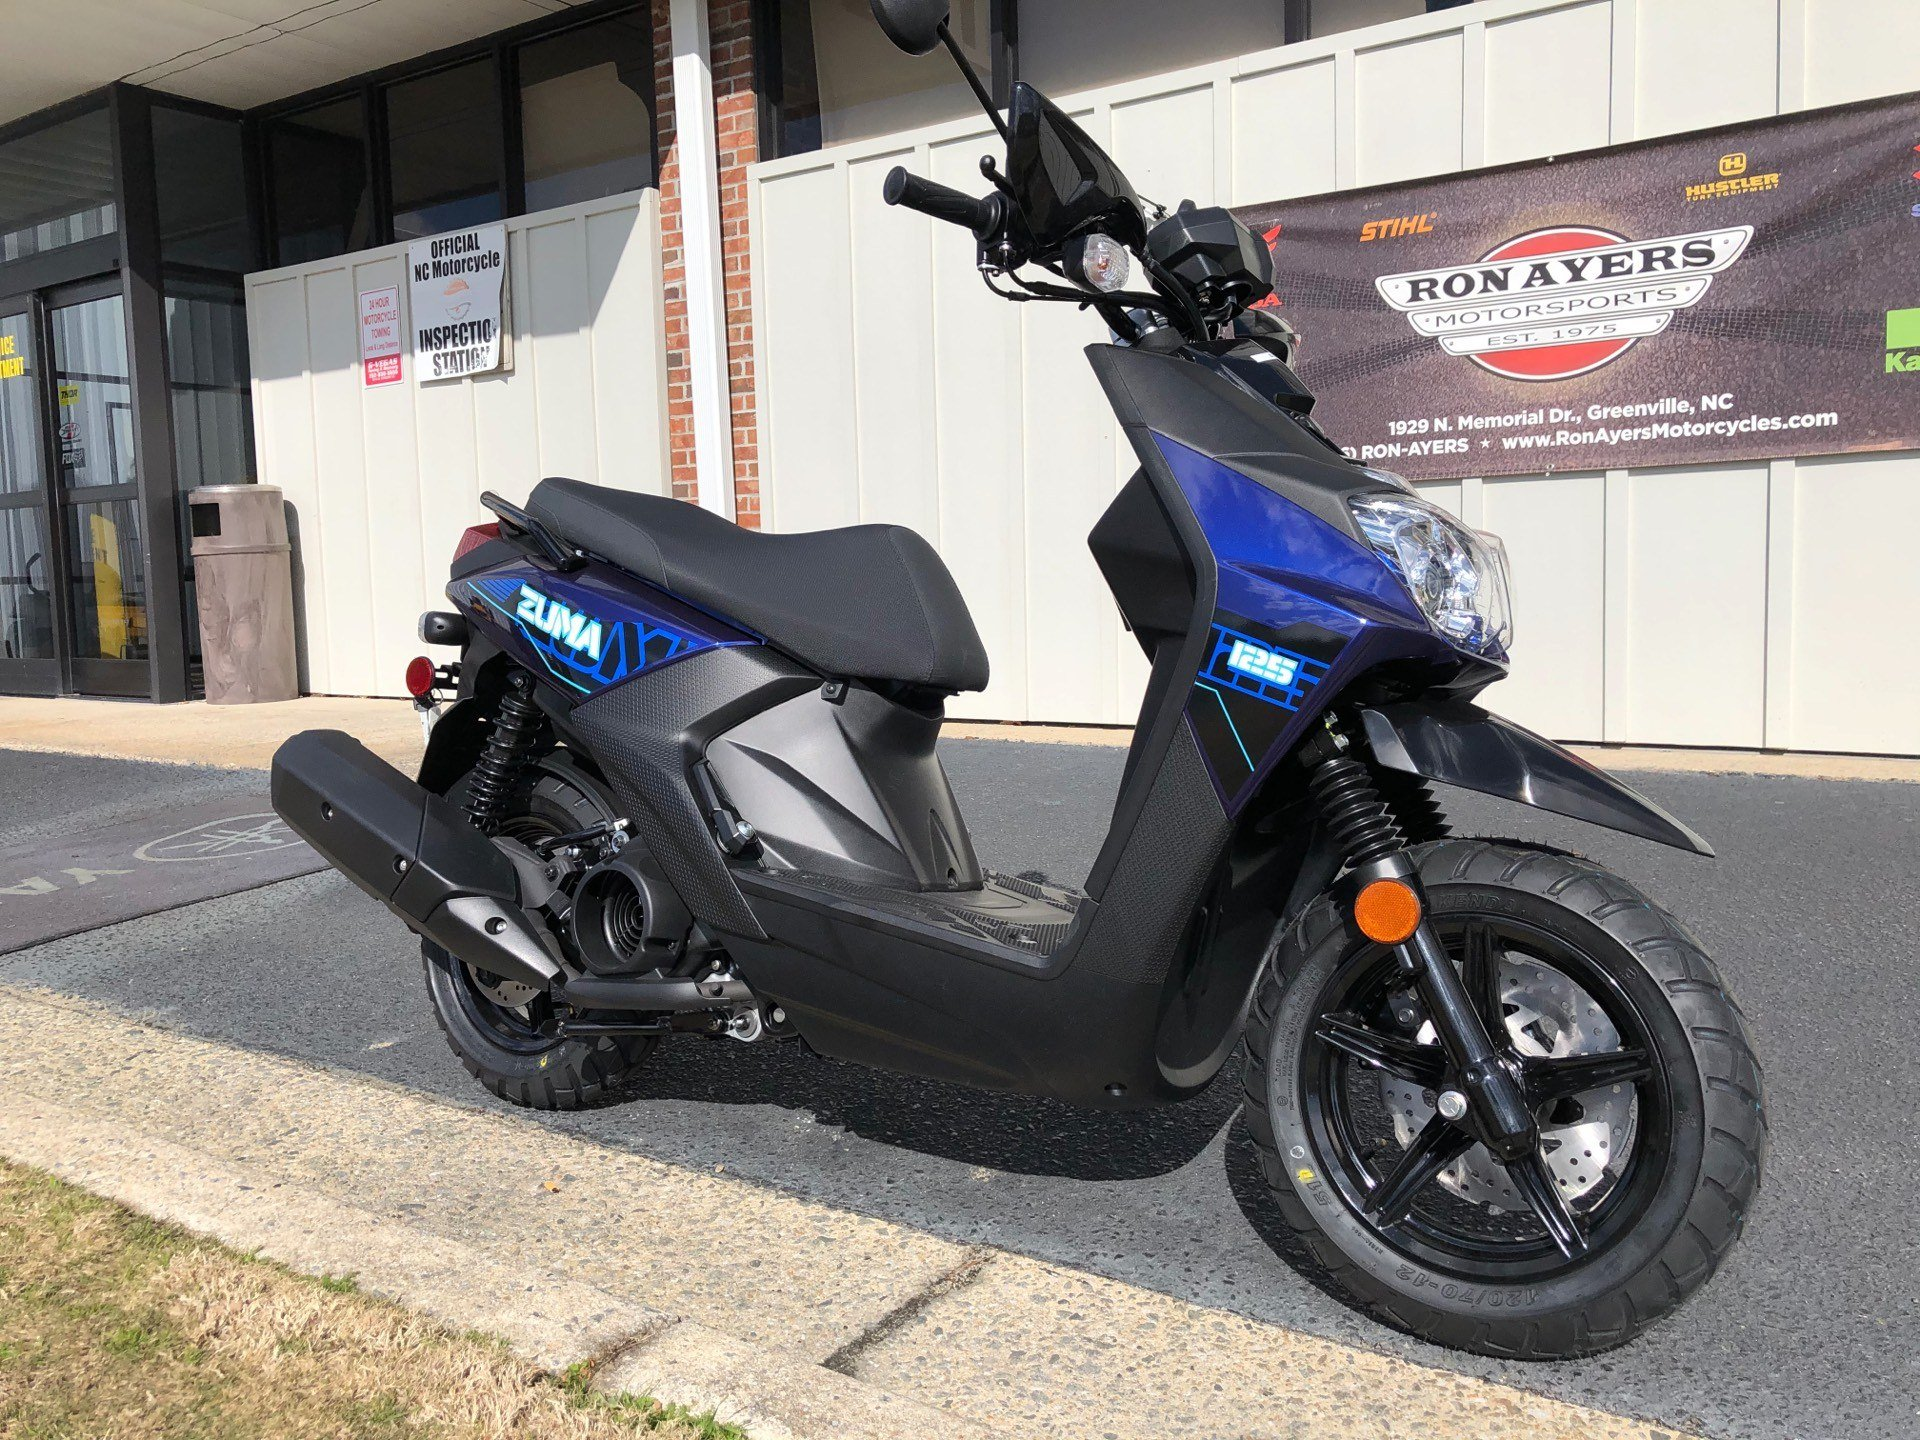 2020 Yamaha Zuma 125 in Greenville, North Carolina - Photo 2